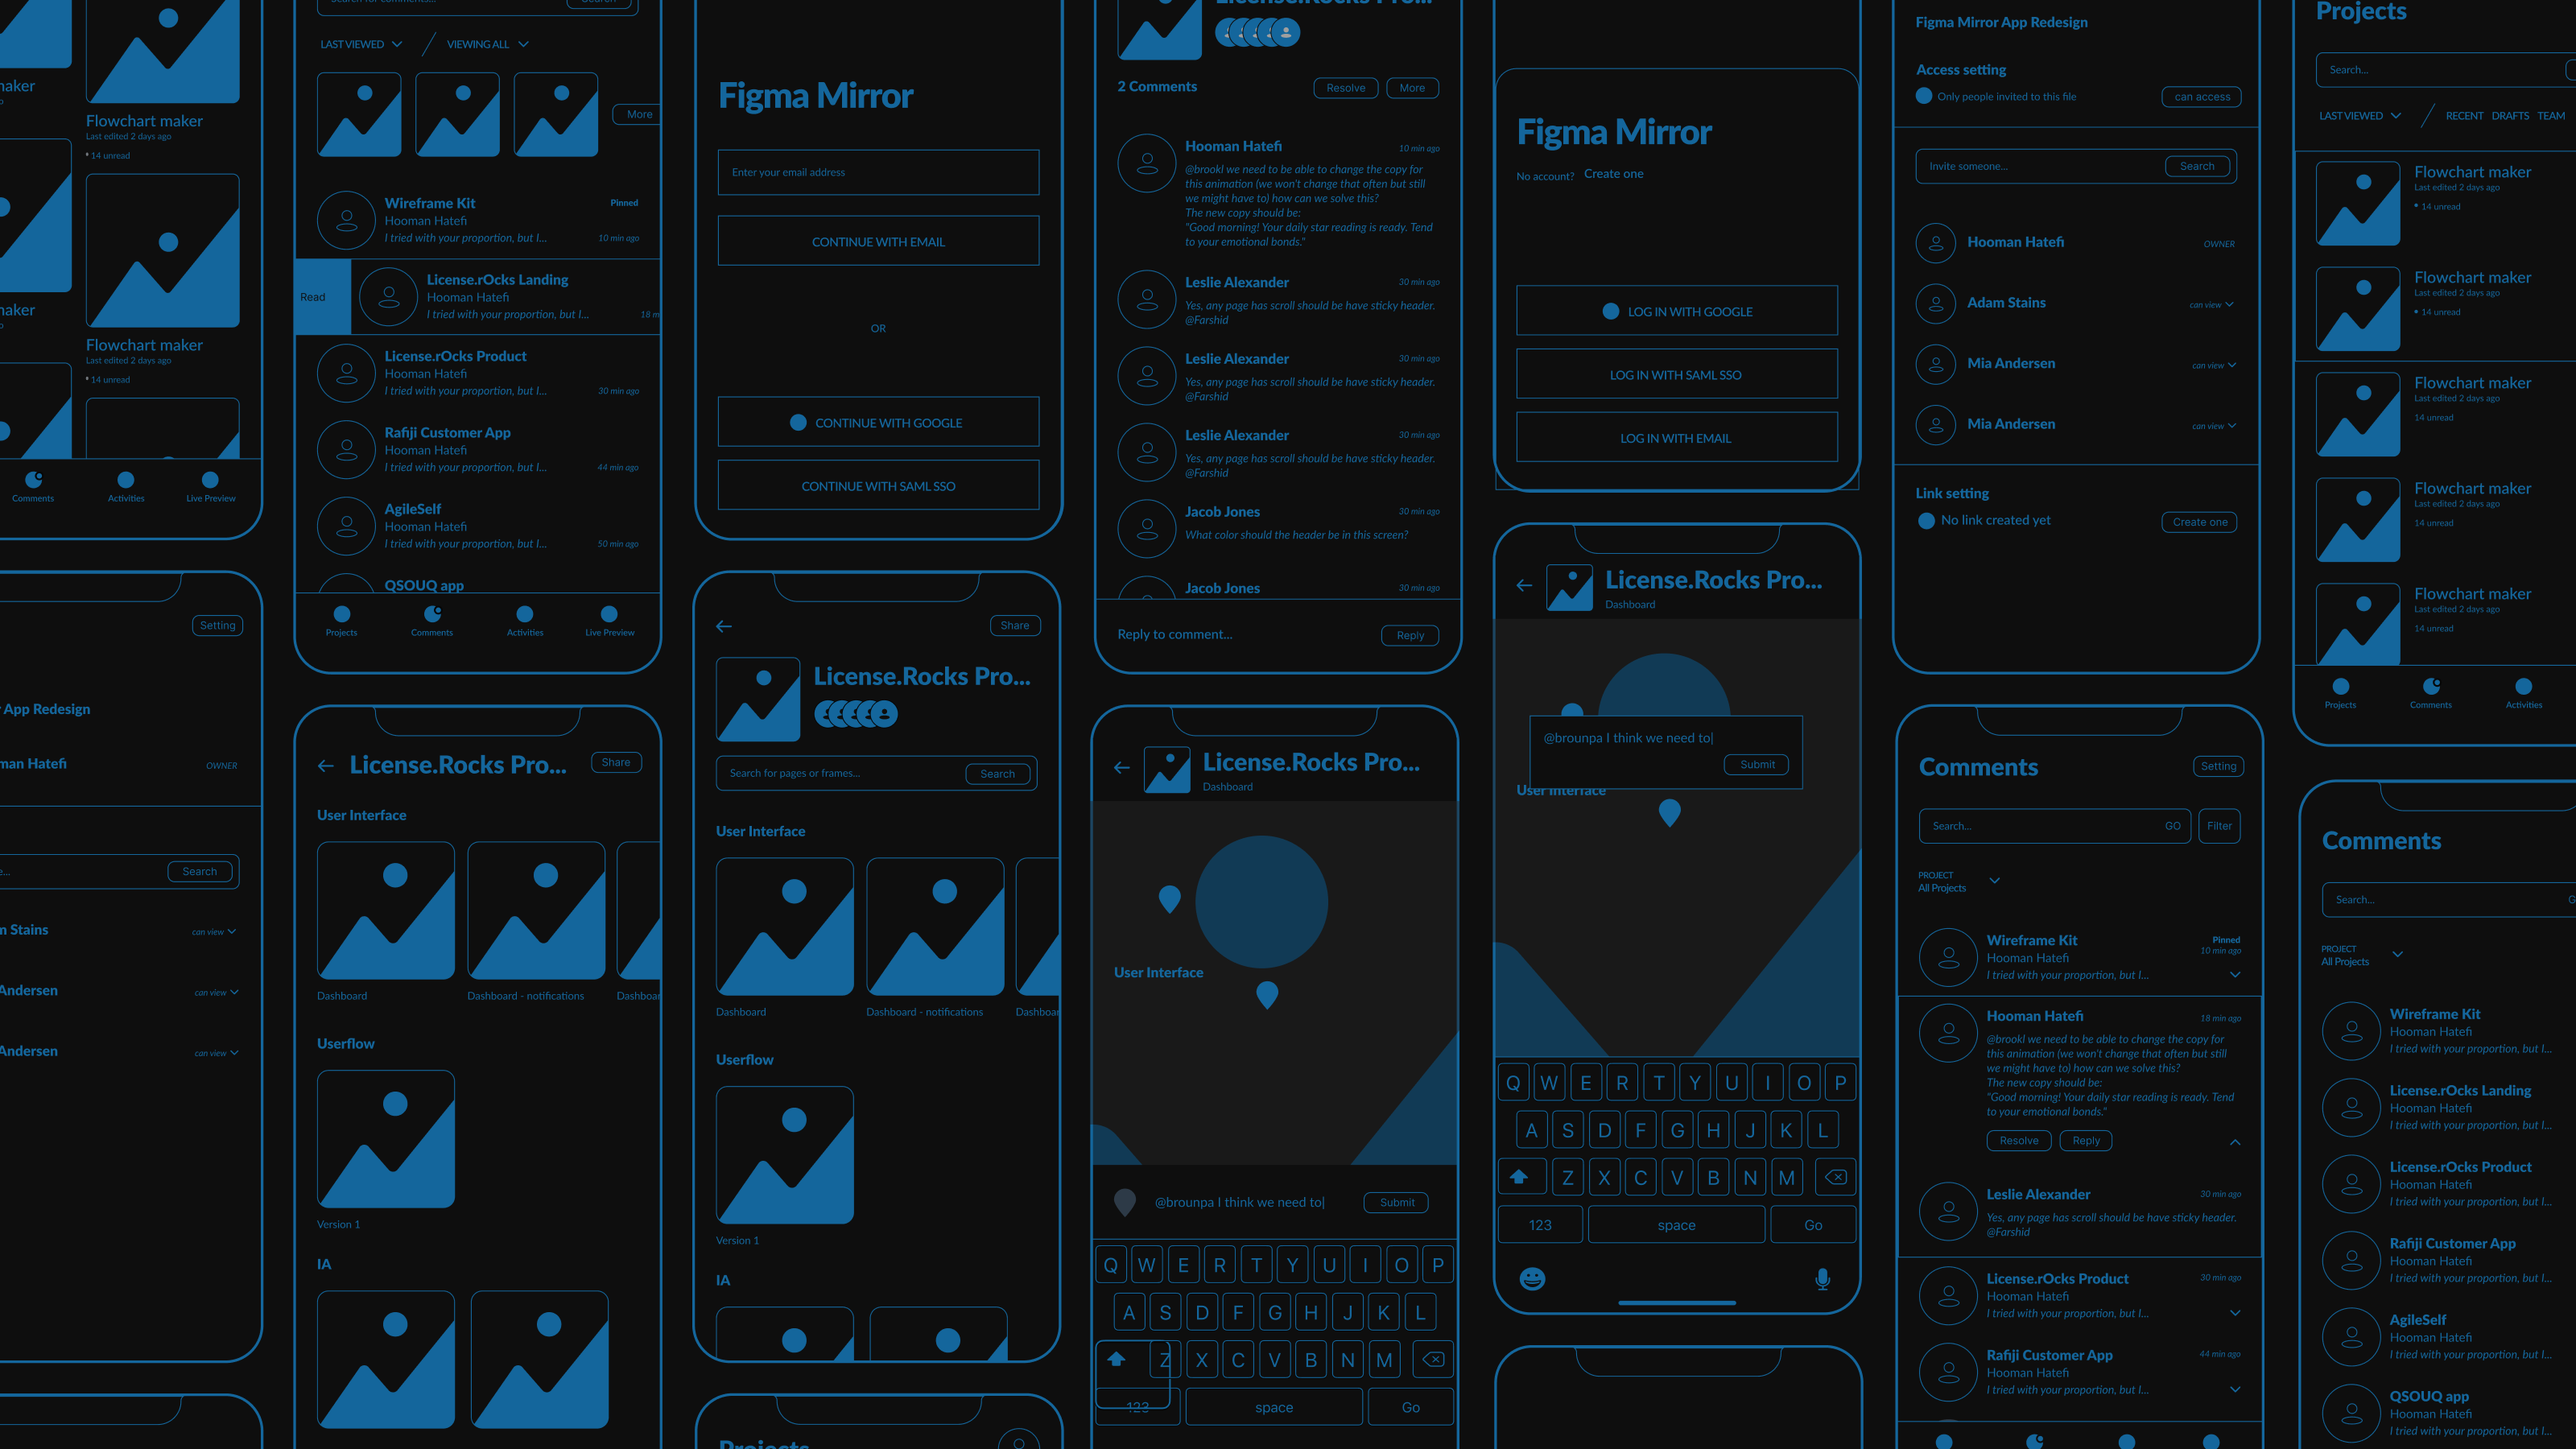 Wireframes of the project